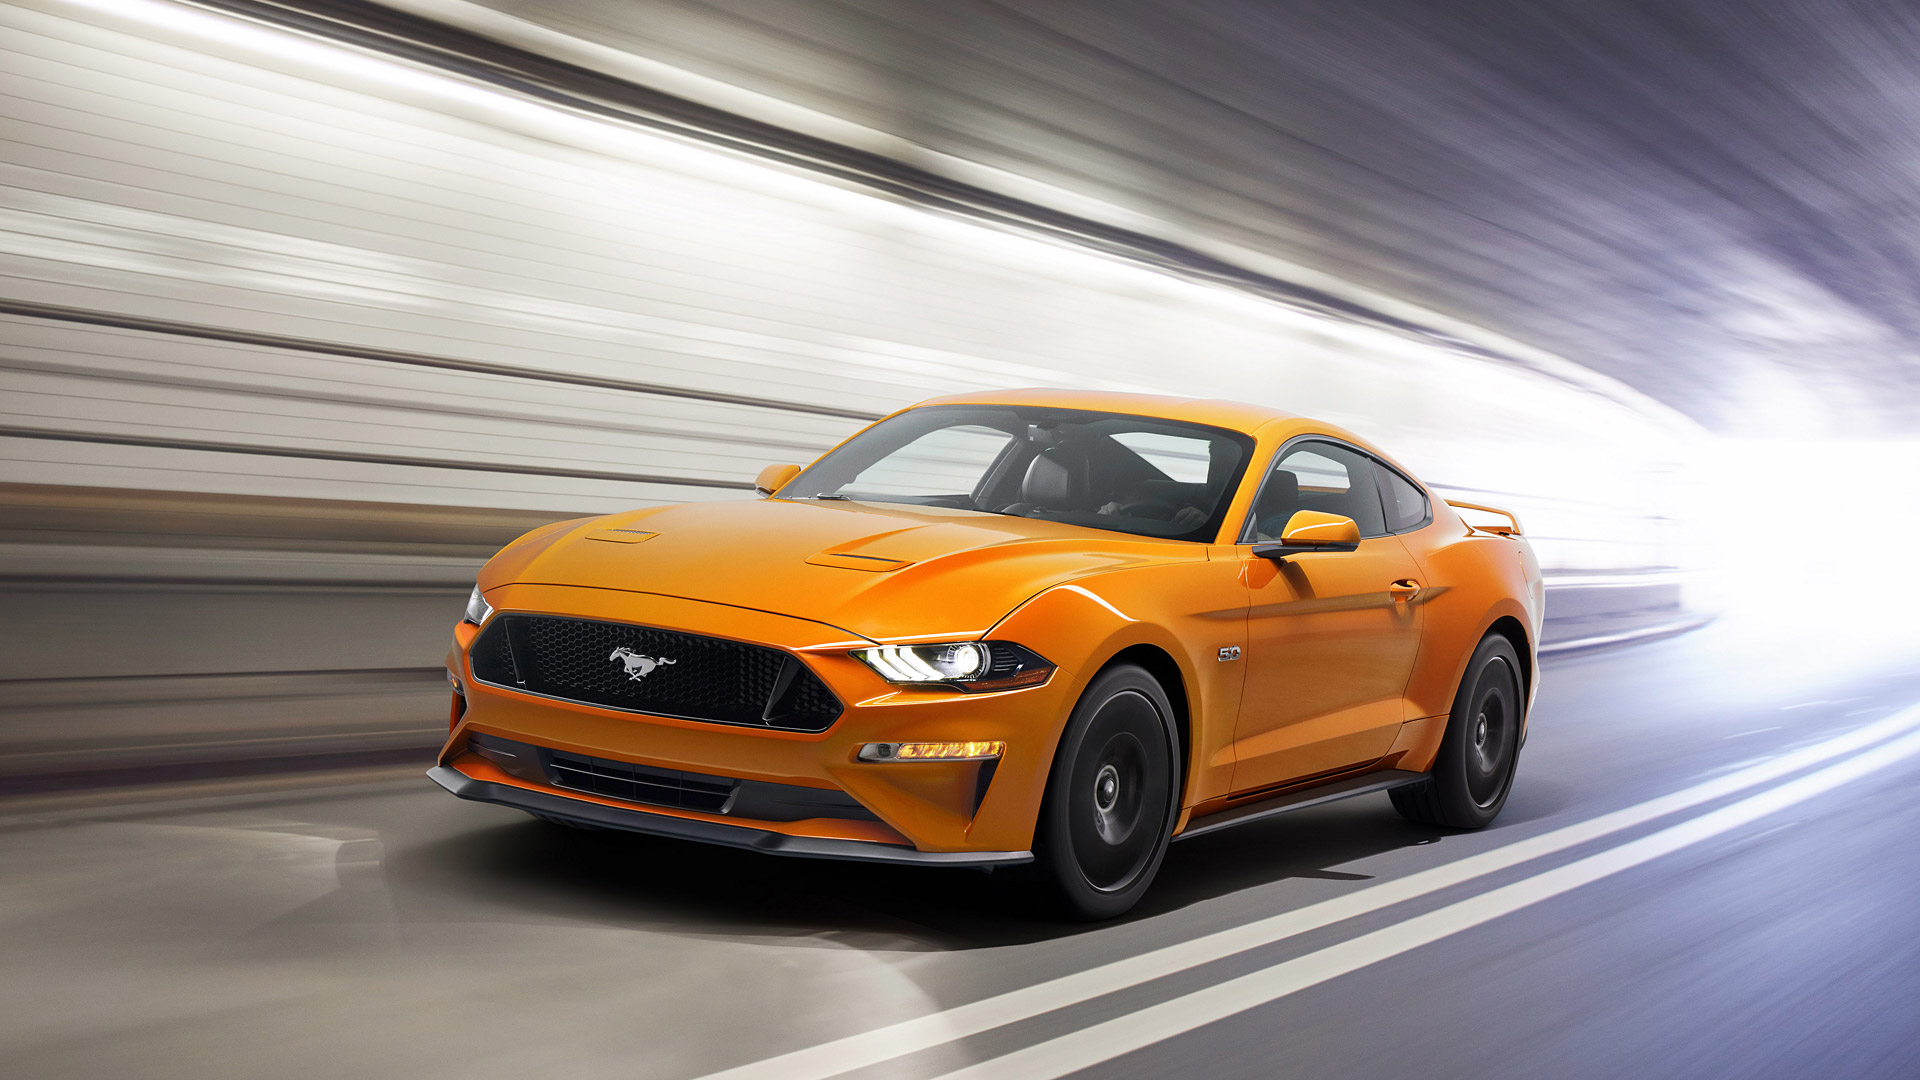 1920x1080 - Ford Mustang GT Wallpapers 20